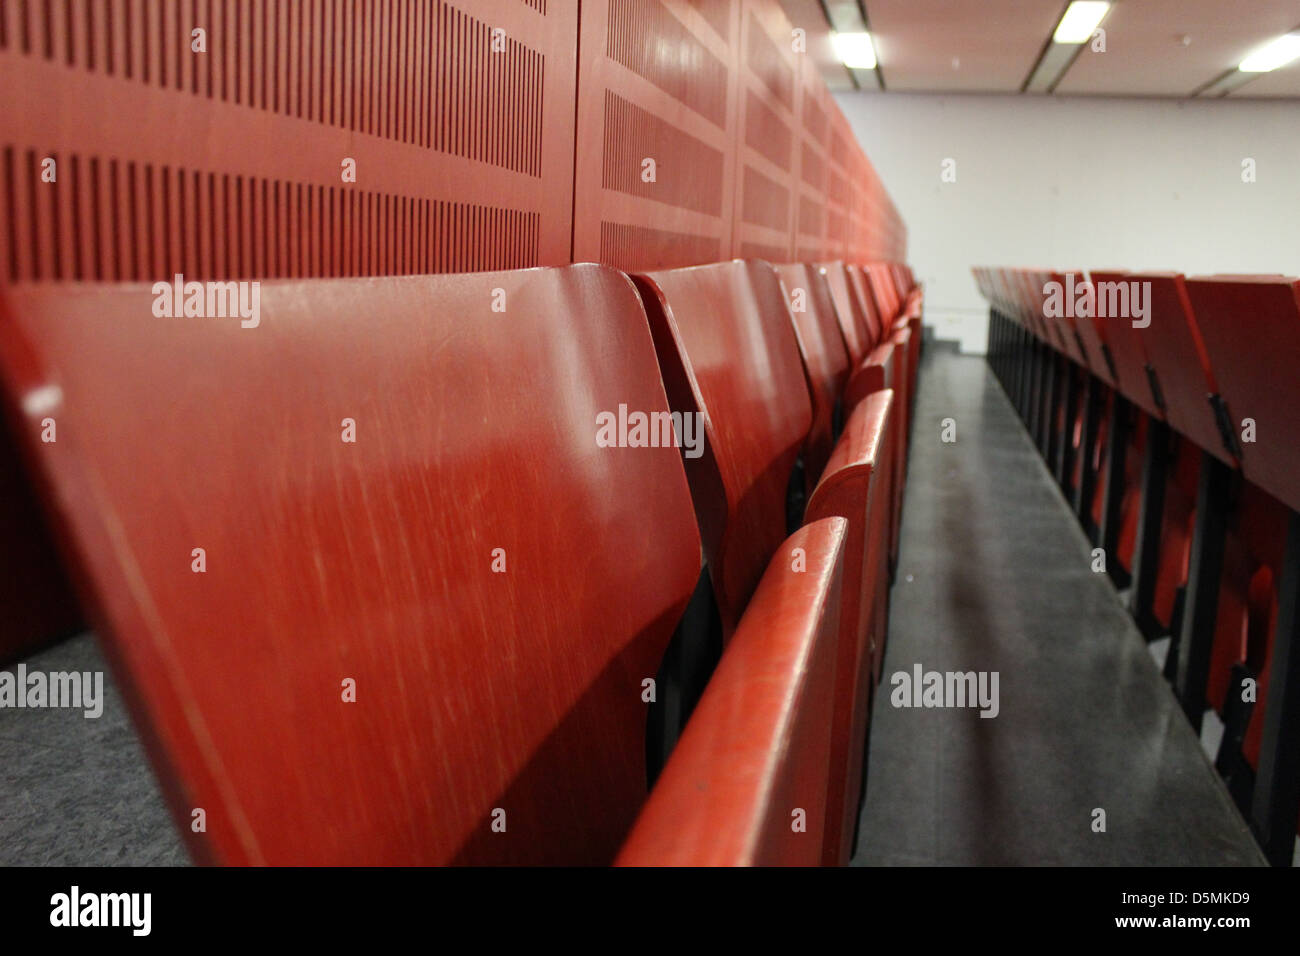 red university lecture hall - Stock Image